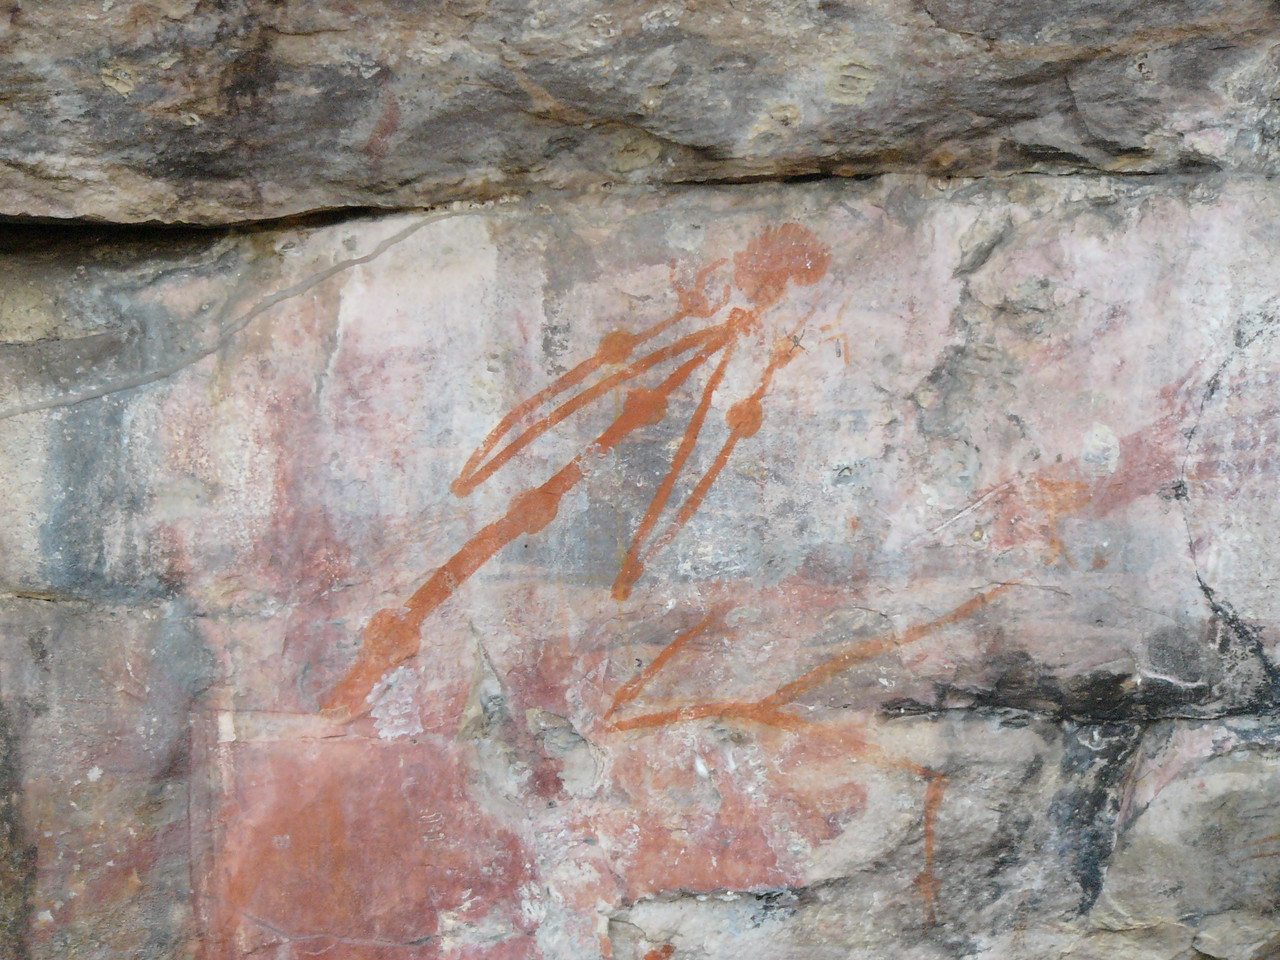 This aboriginal rock paintings depicts an ill person with swollen joints. The accompanying explanation board states that the illness is 'miyamiya'. This illness afflicts people who disturb a sacred site near the East Alligator River.